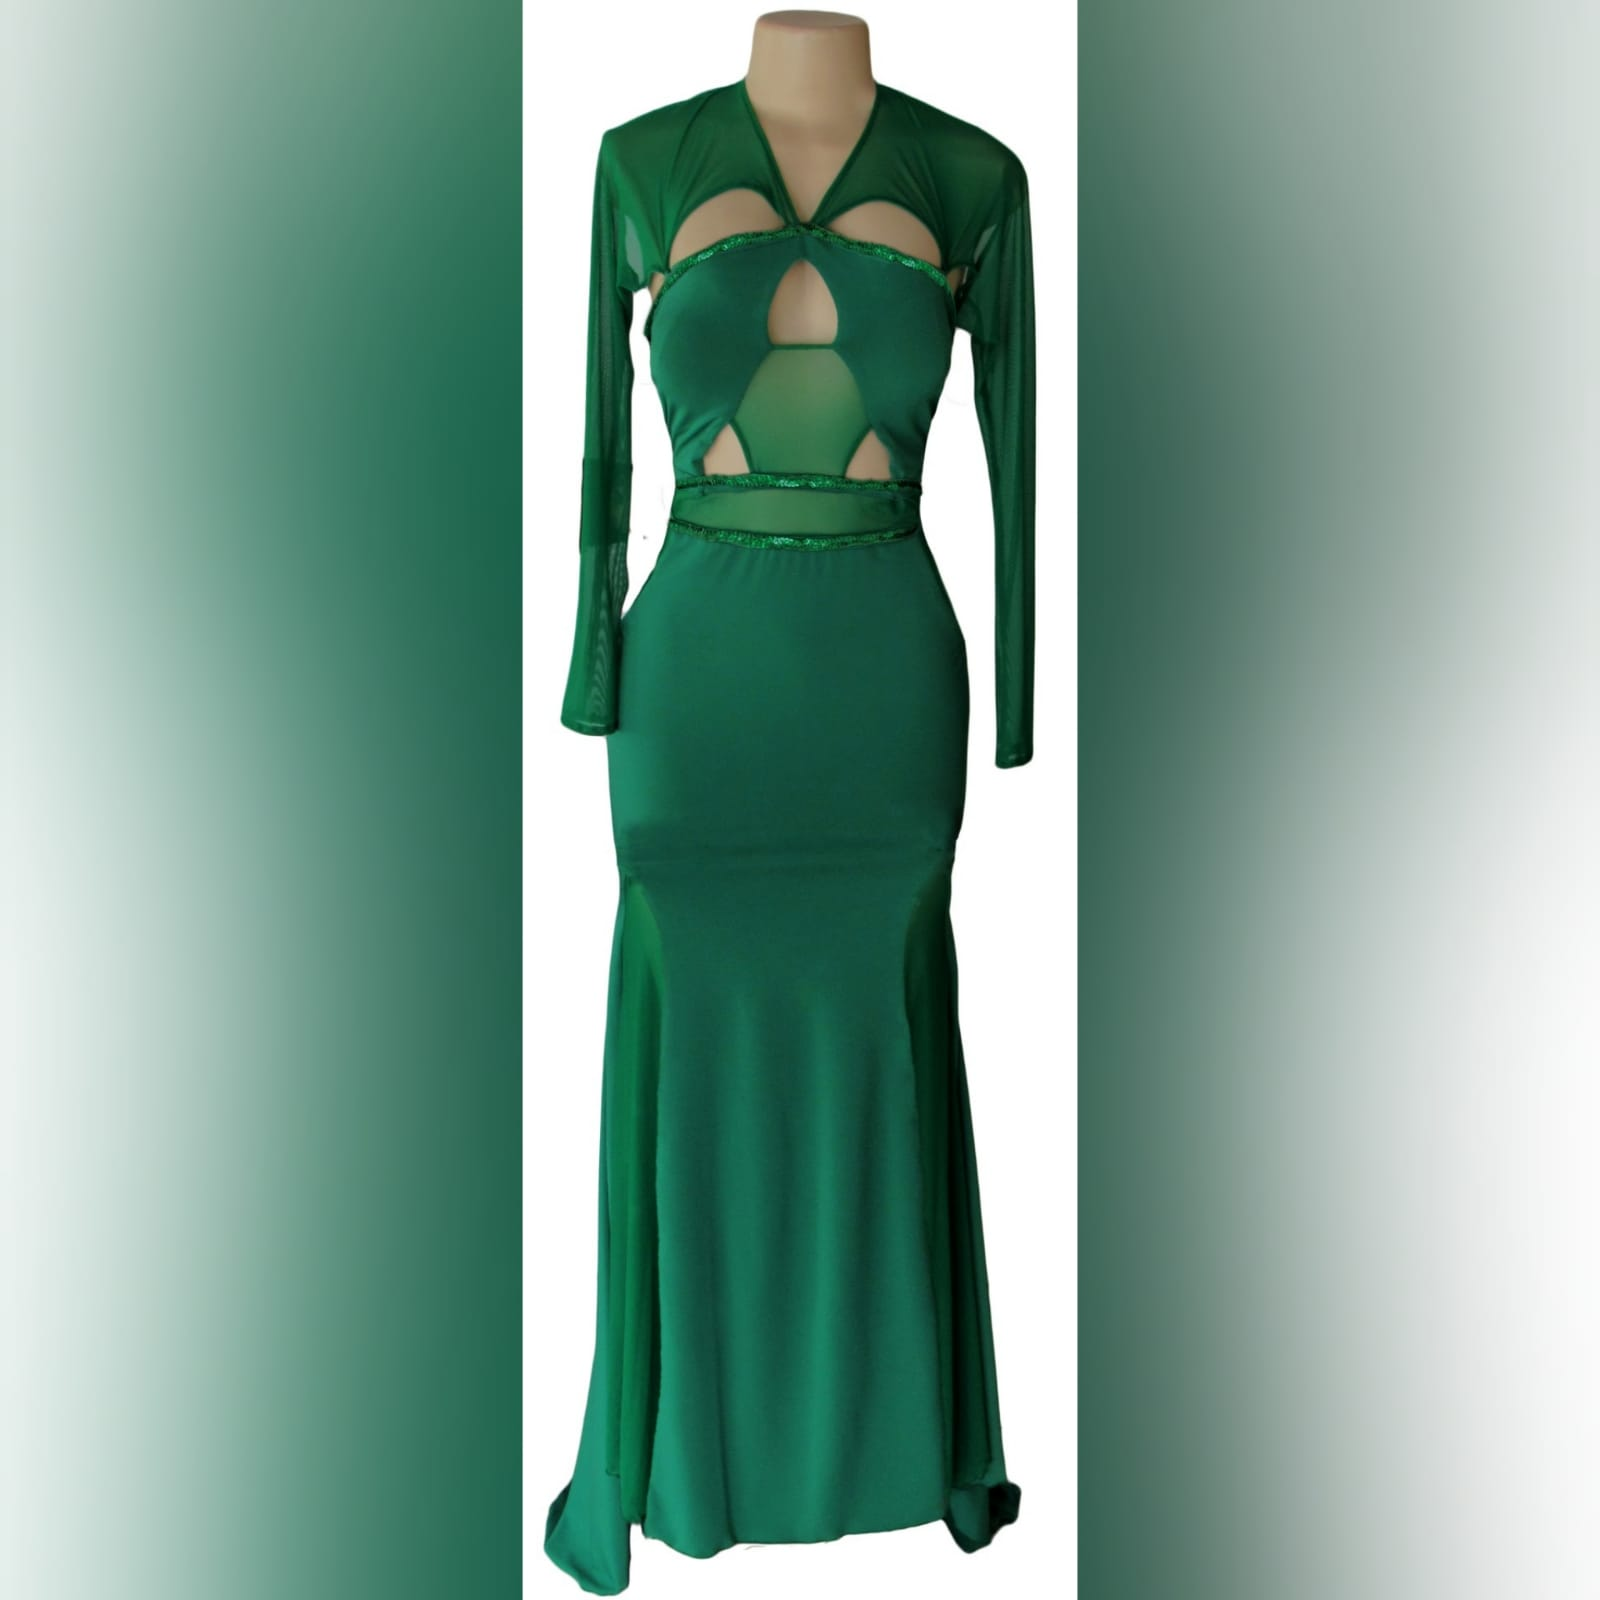 Green soft mermaid sexy unique evening dress 6 green soft mermaid sexy unique evening dress. Long sleeves, shoulders and leg panels in a slightly translucent fabric. A low open back detailed with sequins and beads.